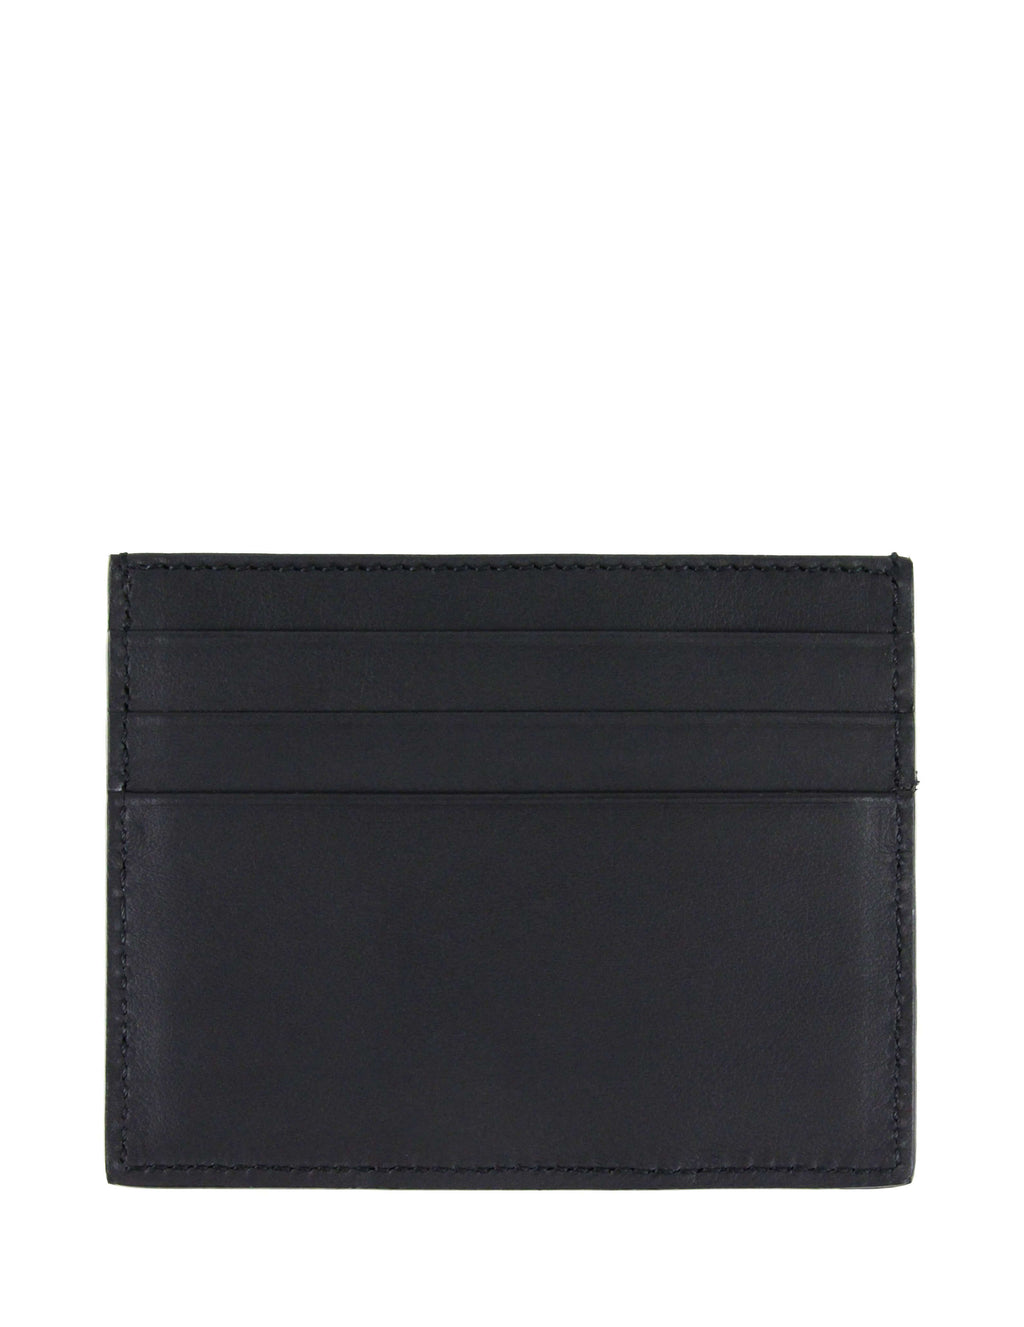 Fendi Men's Giulio Fashion Black FF Logo Cardholder 7M0164A18AF0SAJ